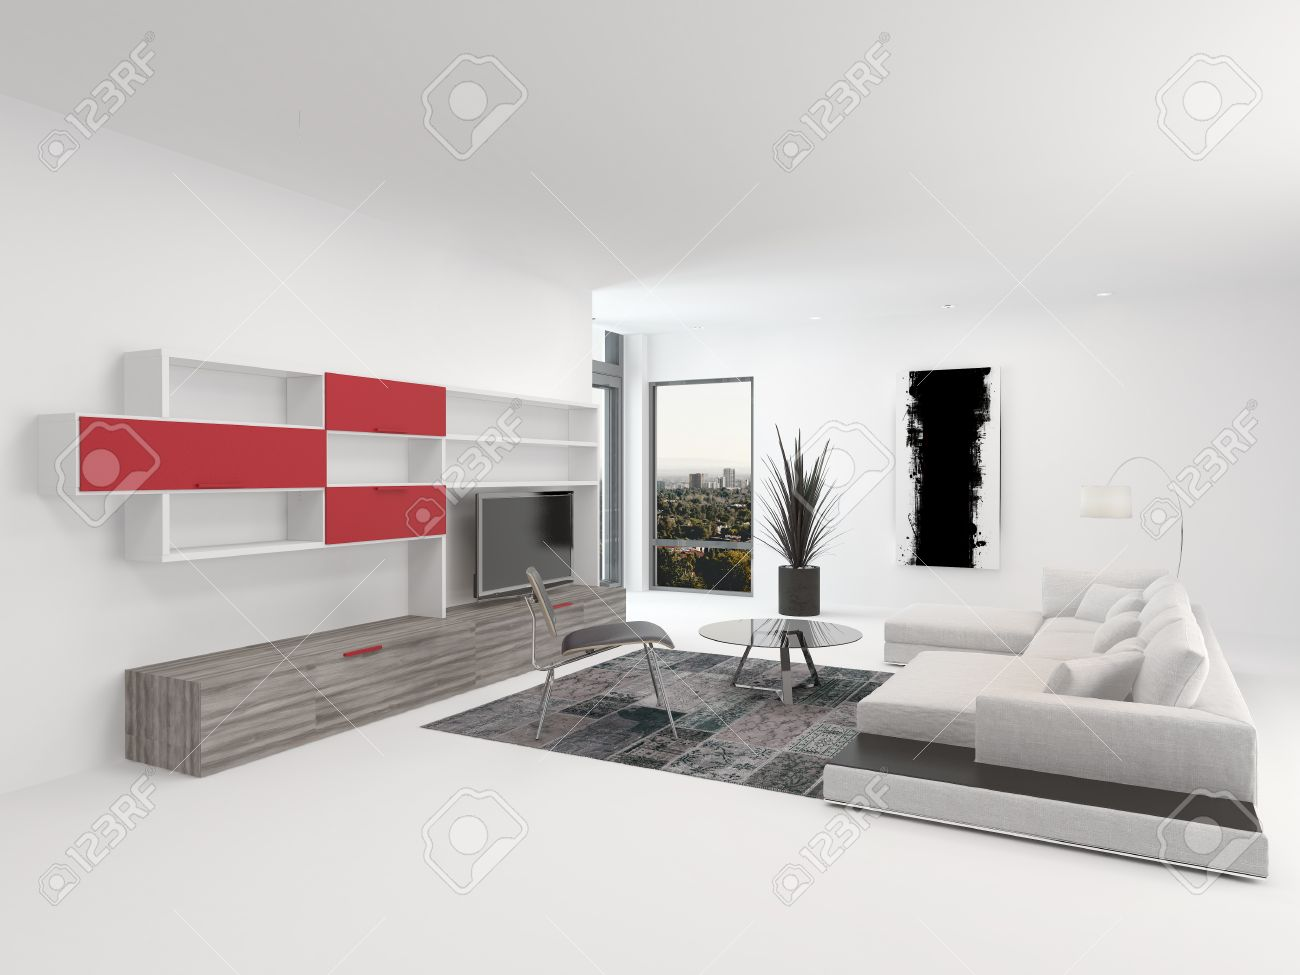 Modular Living Room Cabinets Upmarket Modern Living Room Interior With Vivid Red Accents And